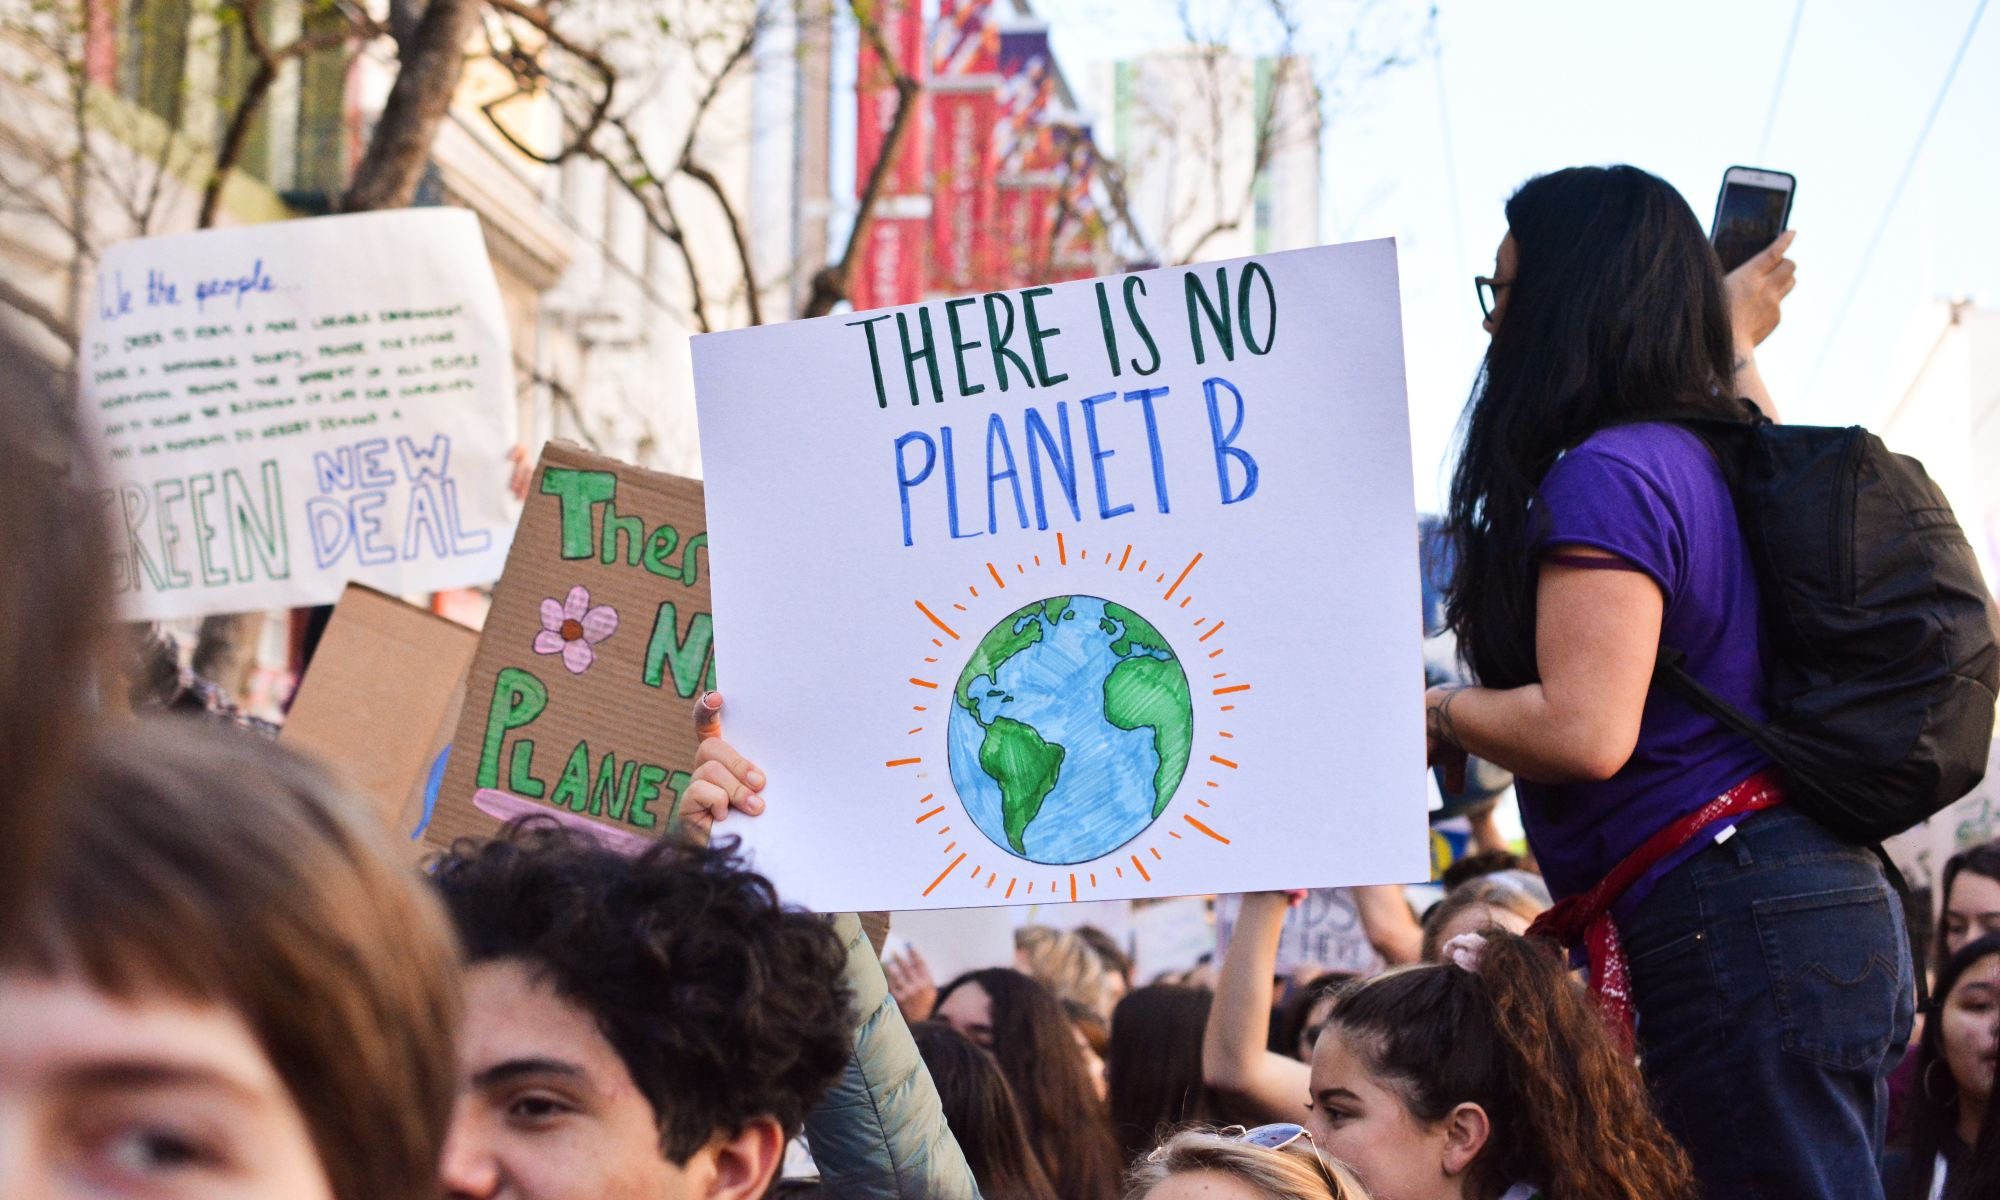 There is no planet B sign